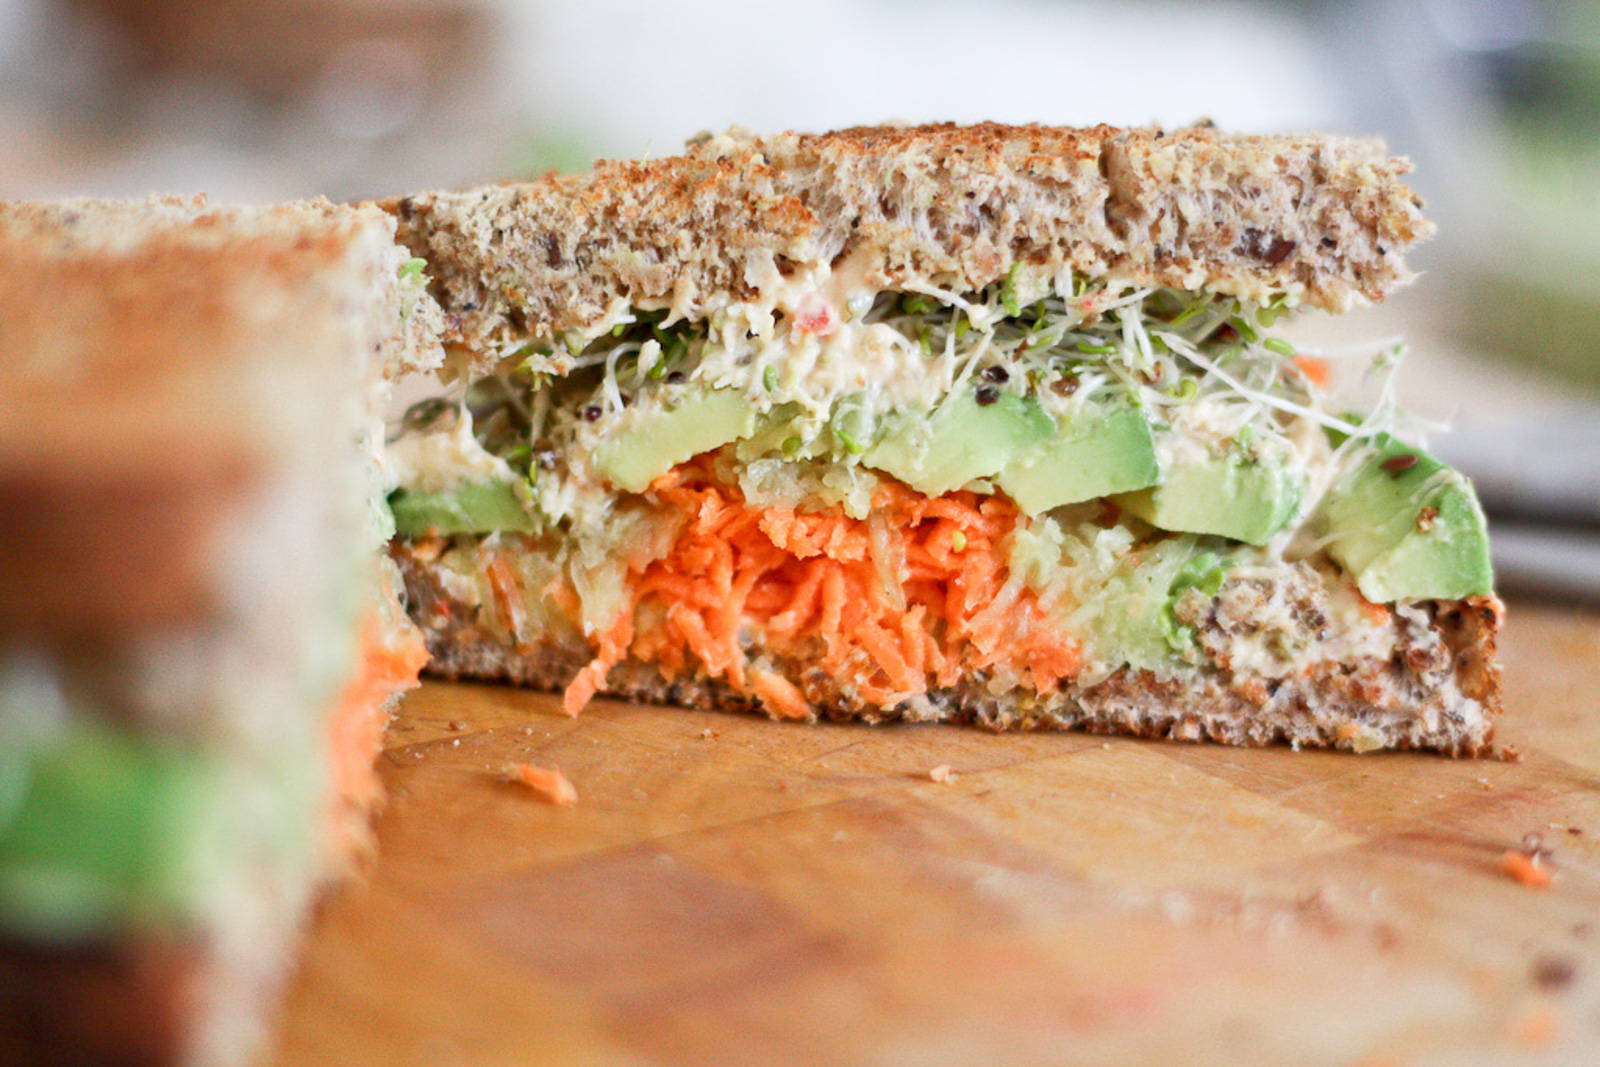 Hummus, Carrot, Cucumber, Avocado, and Sprouts Sandwich